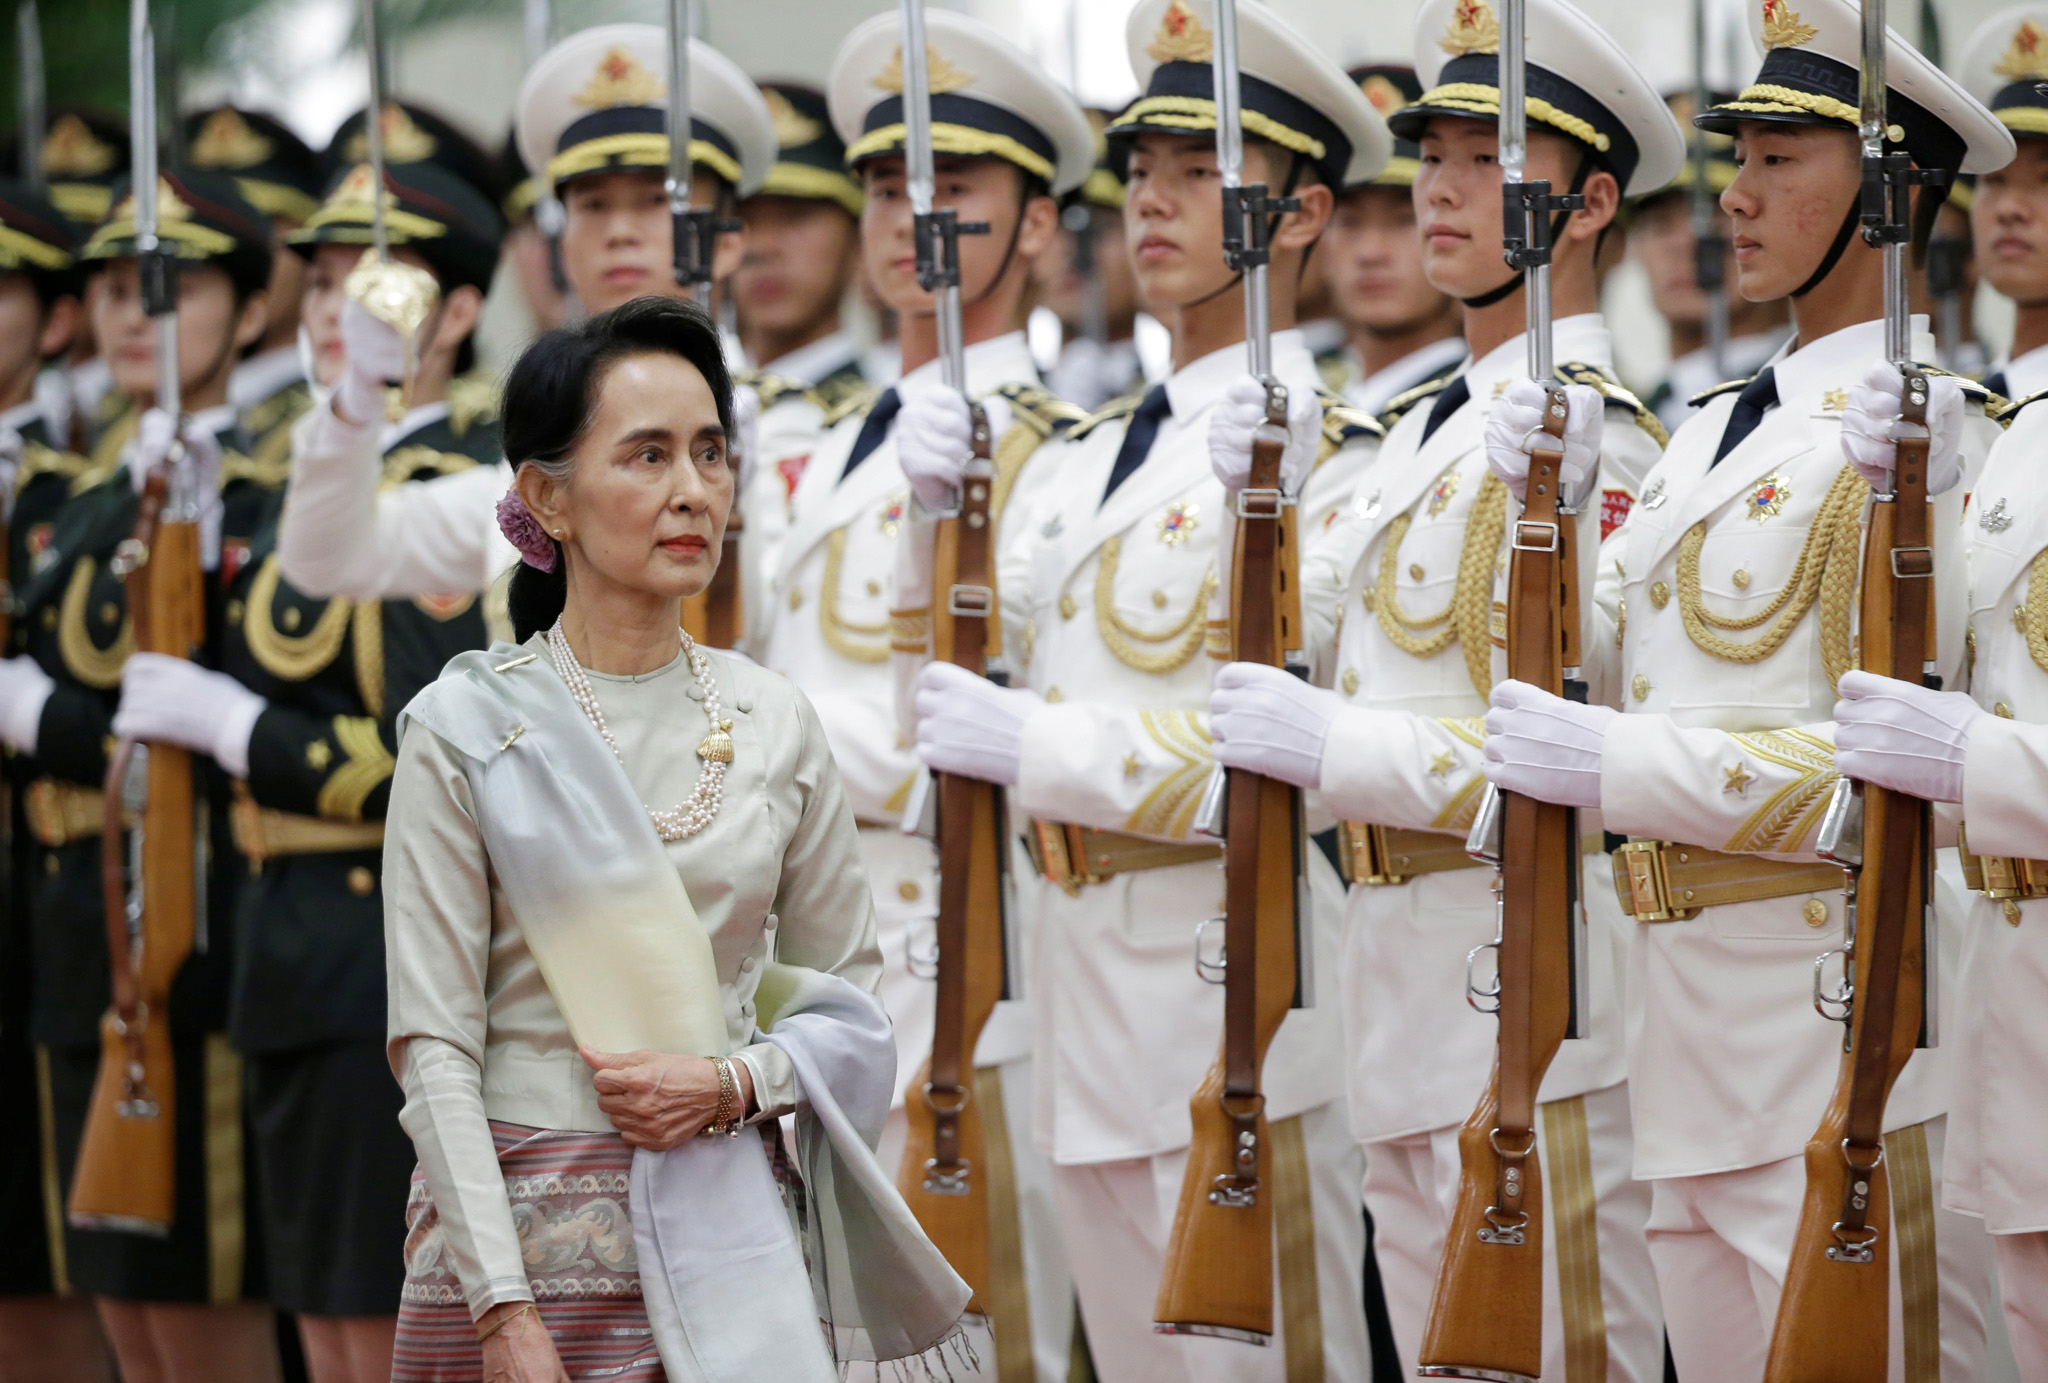 Myanmar State Counselor Aung San Suu Kyi reviews honour guards during a welcoming ceremony at the Great Hall of the People in Beijing